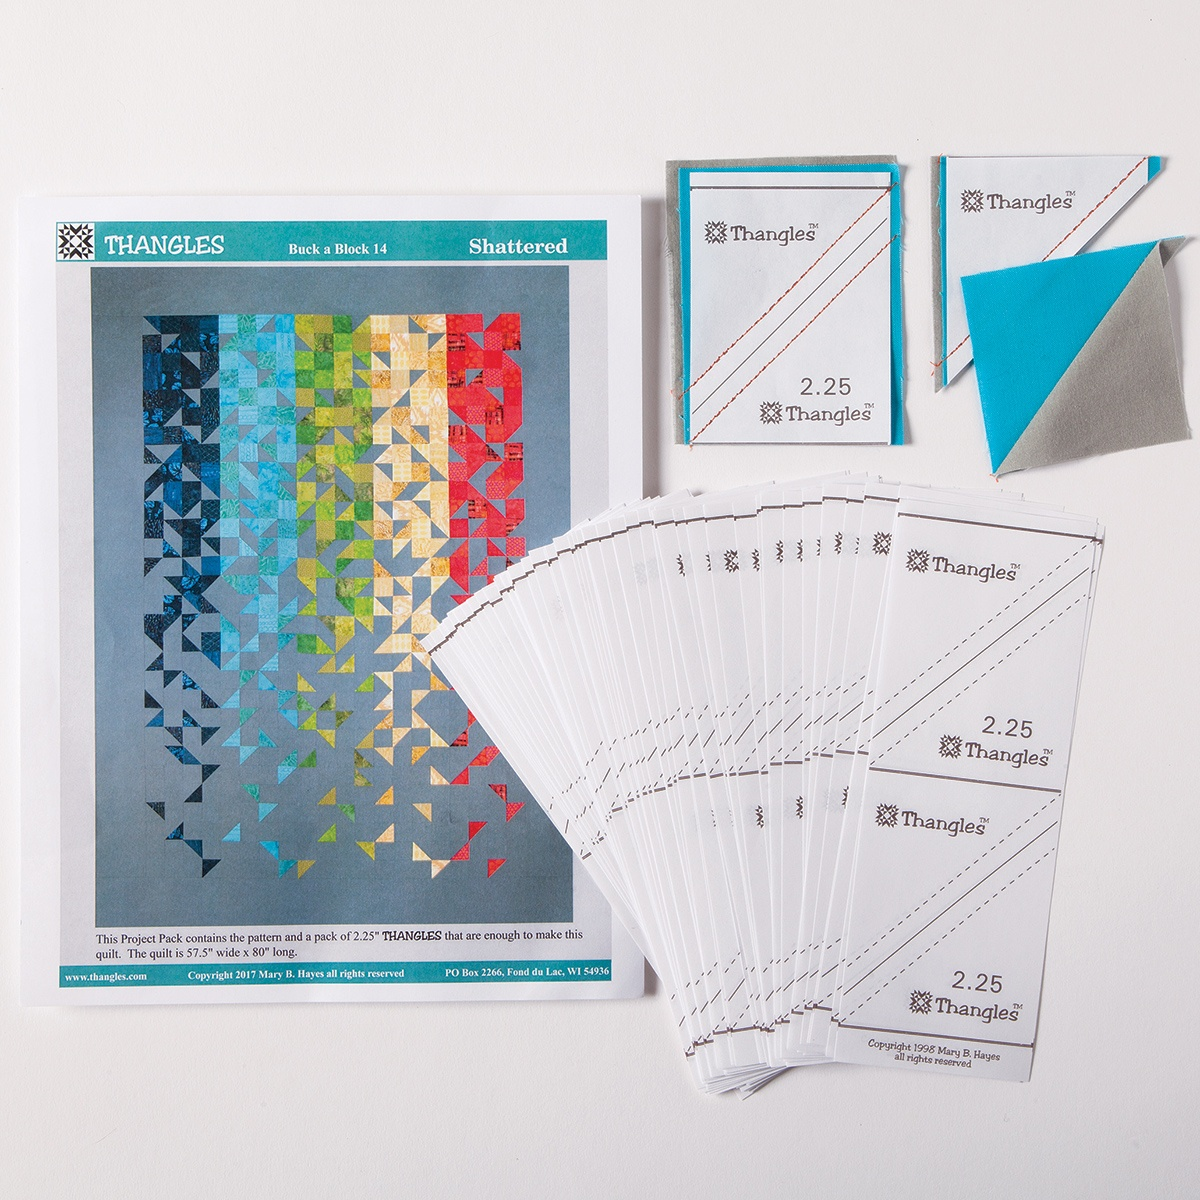 Shattered Quilt Pattern And Thangles |Quilting Best Sellers |Nancy's - Printable Thangles Free